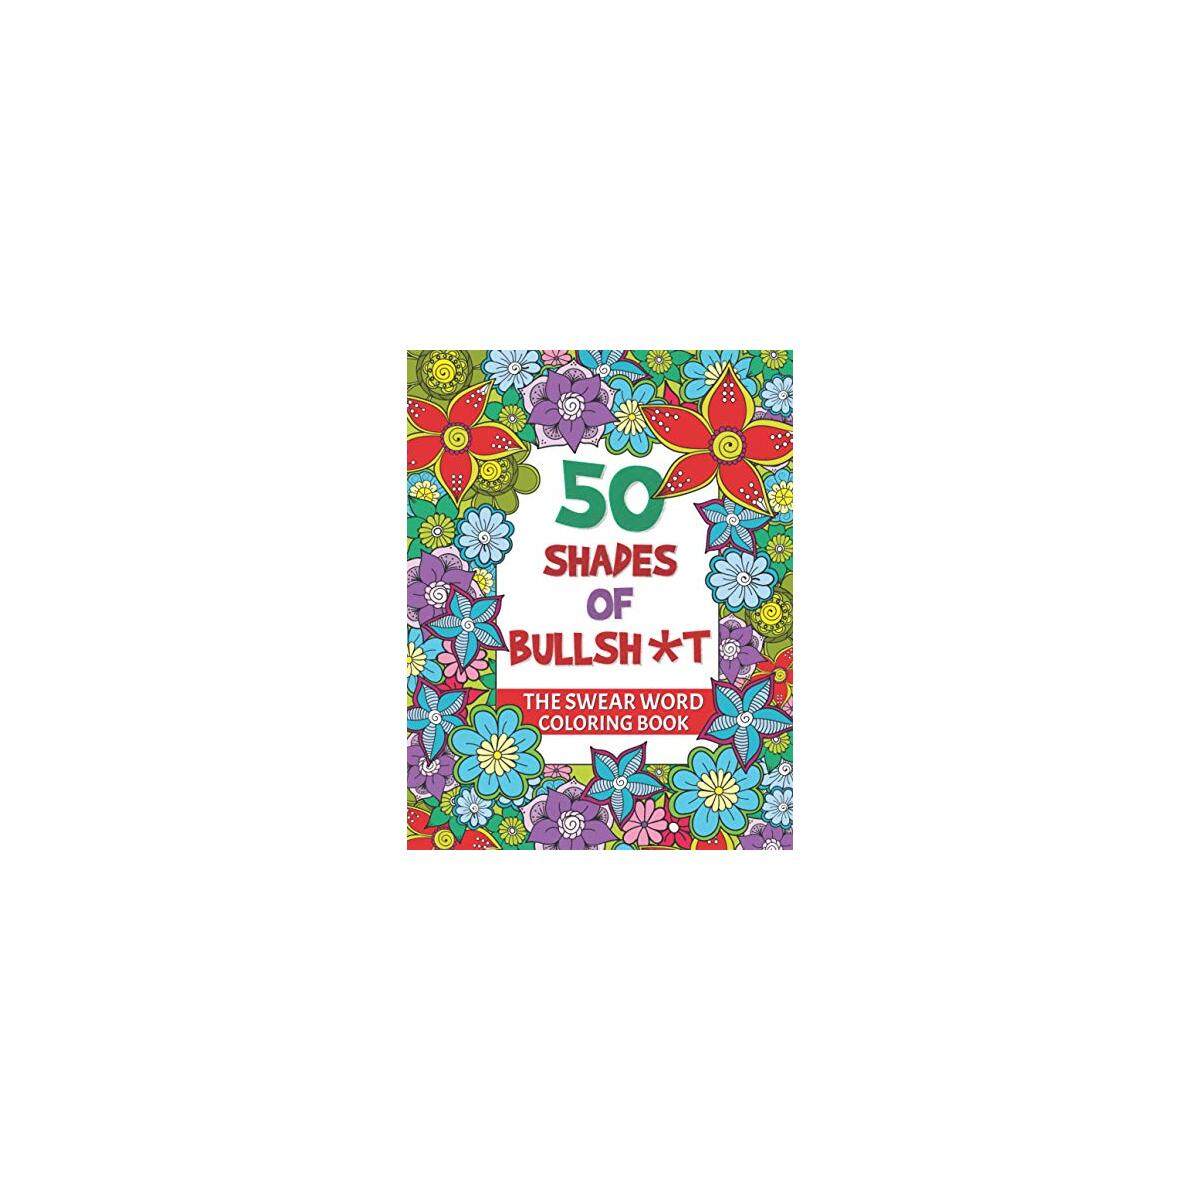 50 Shades Of Bullsht Coloring - The Swear Word Coloring Book: Fucking Adorable Cuss Word Book An Impolite Adult Coloring Book